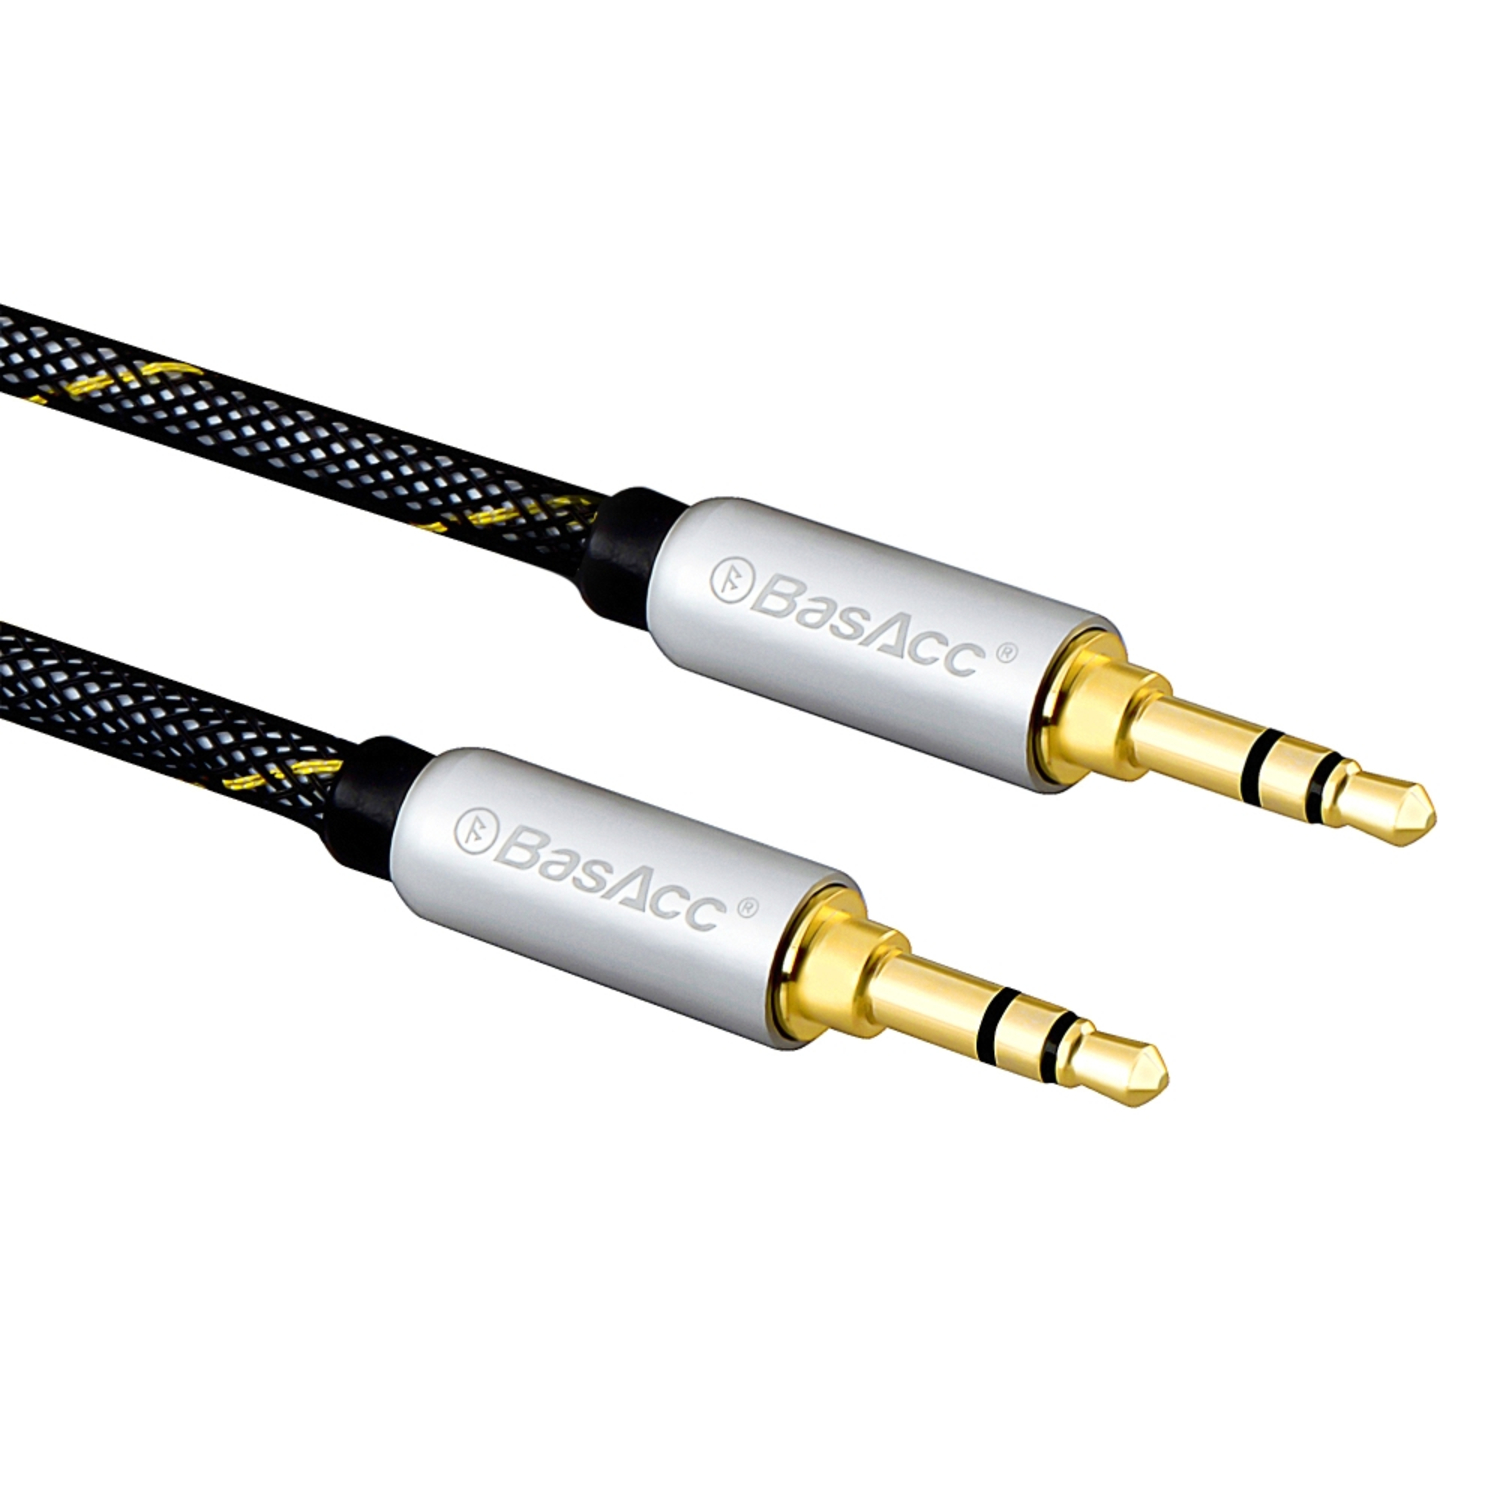 BasAcc 4' Premium Stereo 3.5mm Braided Audio Cable Male to Male Gold Plated M/M Silver (for Speaker Soundbar Smartphone Cell Phone Mobile Tablet iPhone iPod iPad MP3 Aux Auxiliary Input) Jack to Jack